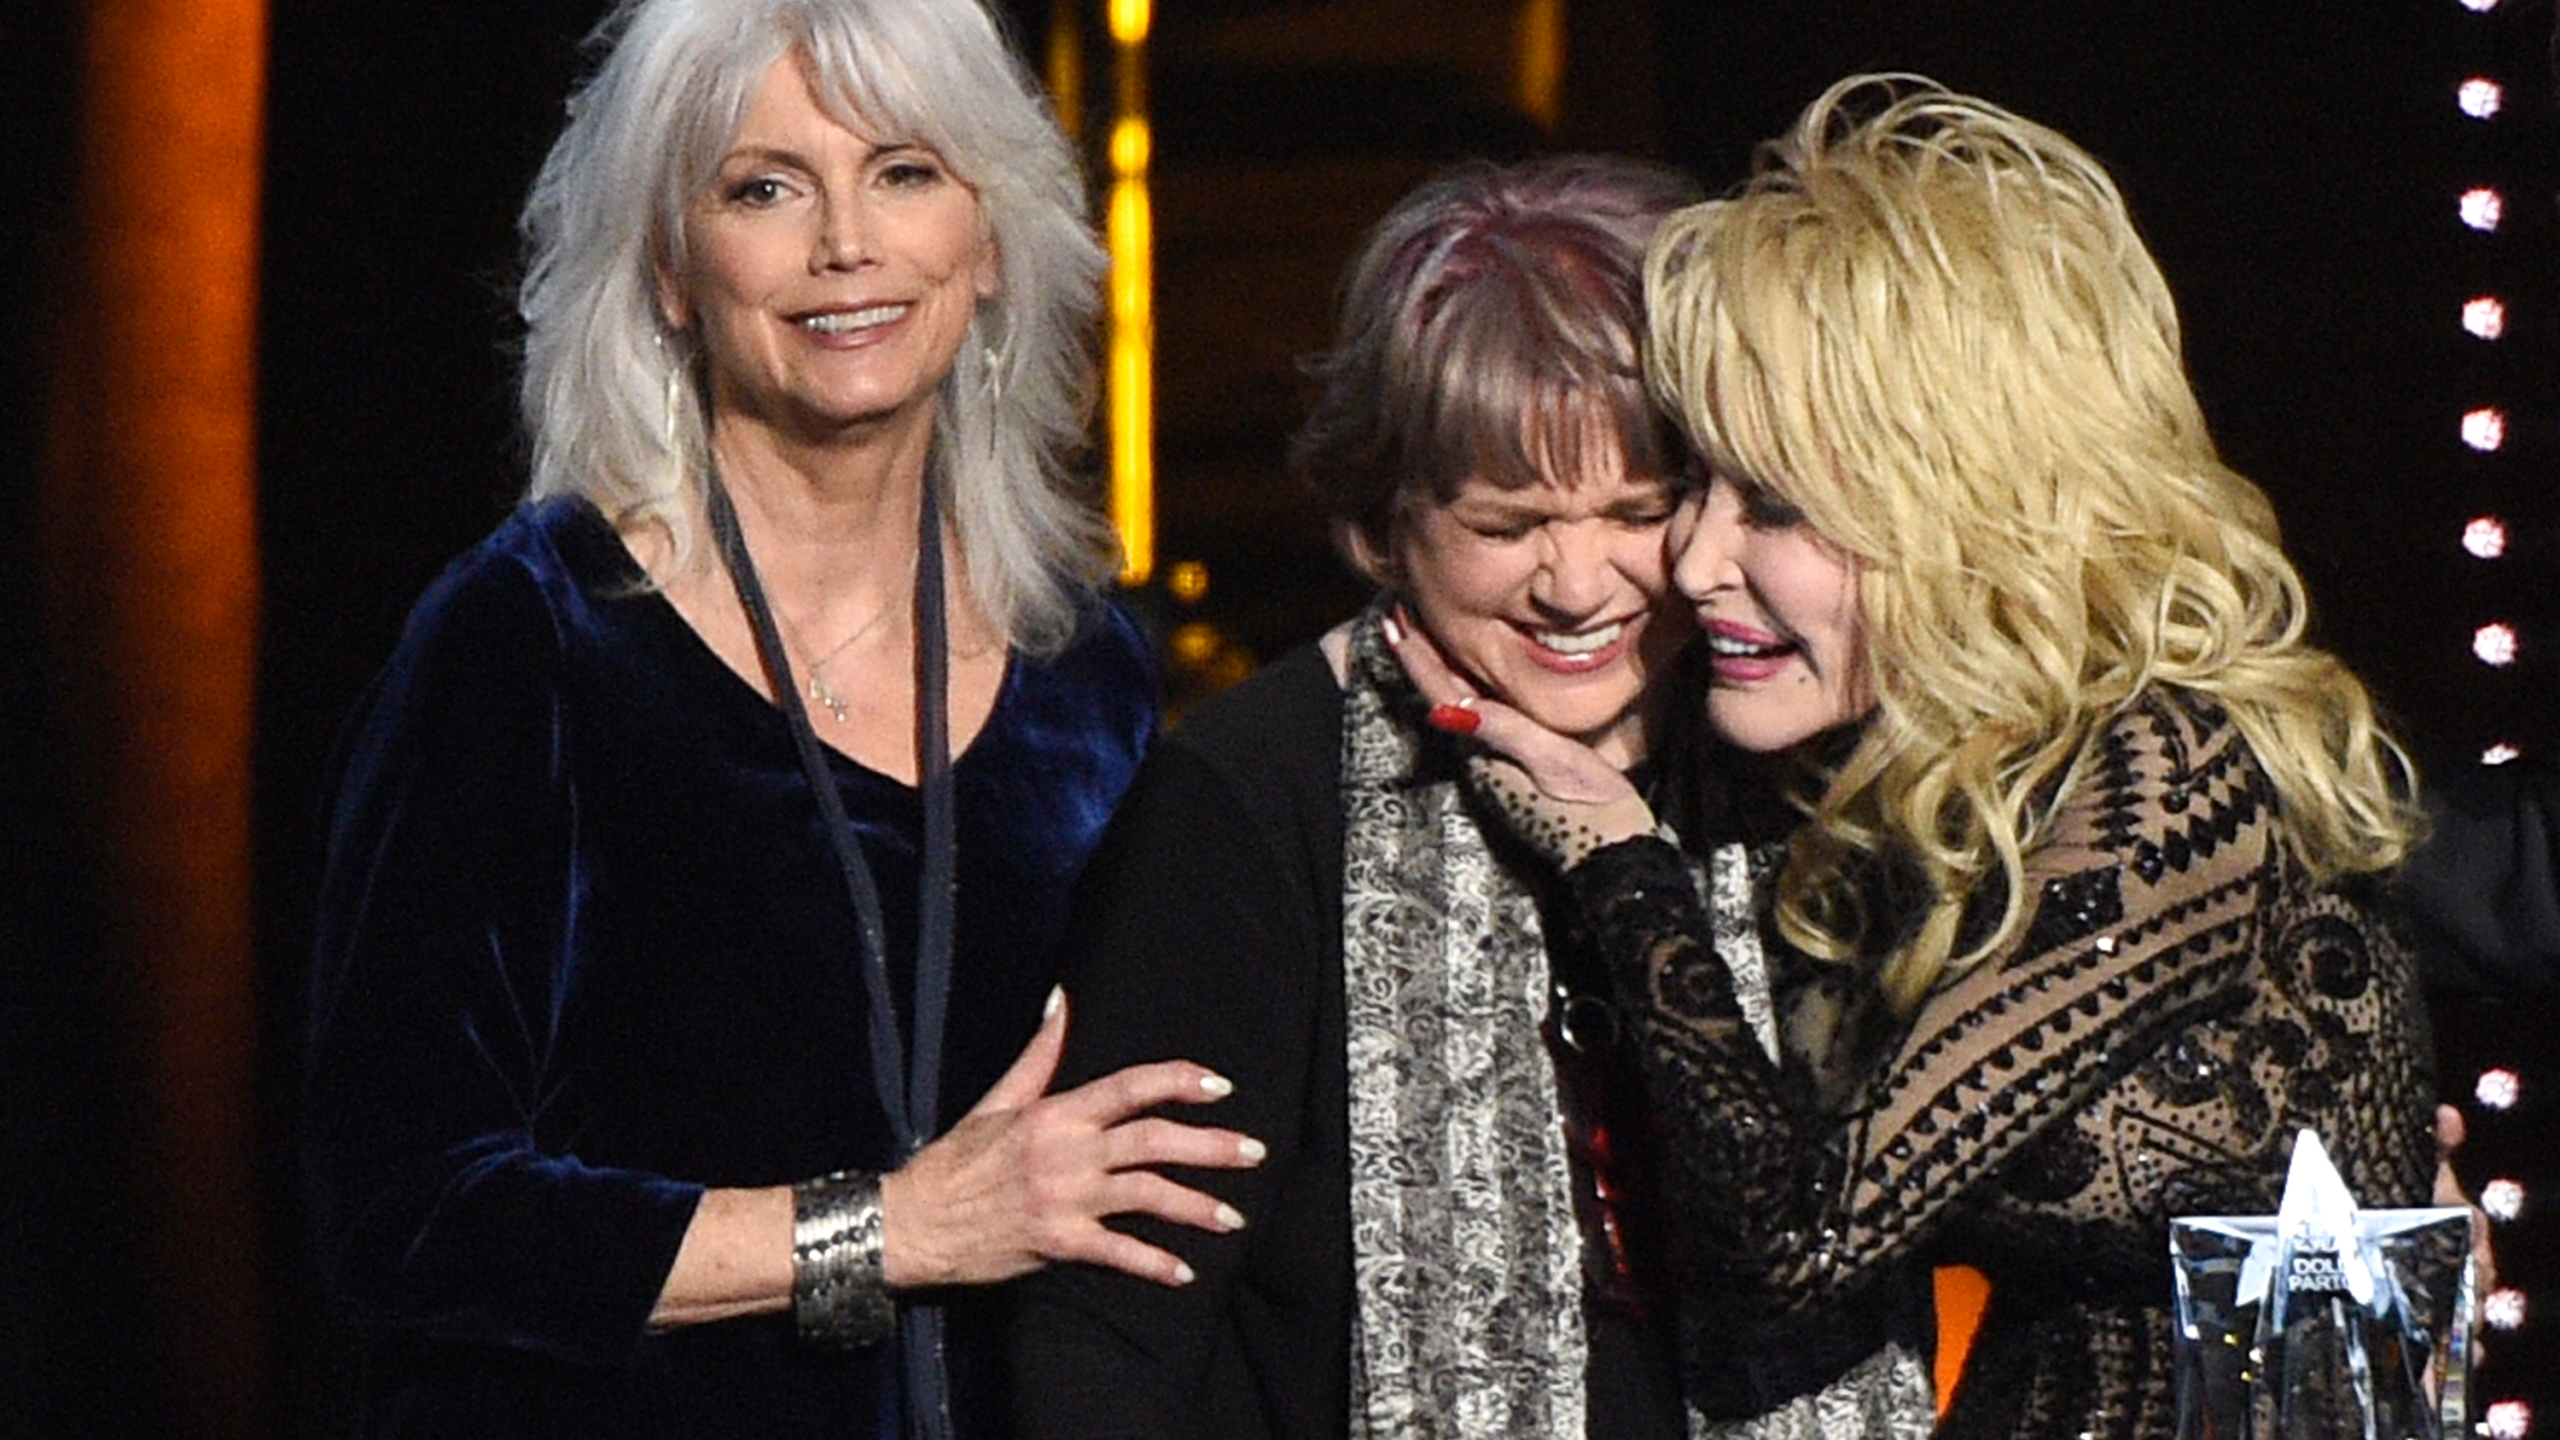 Emmylou Harris, from left, and Linda Ronstadt present Dolly Parton with the MusiCares Person of the Year